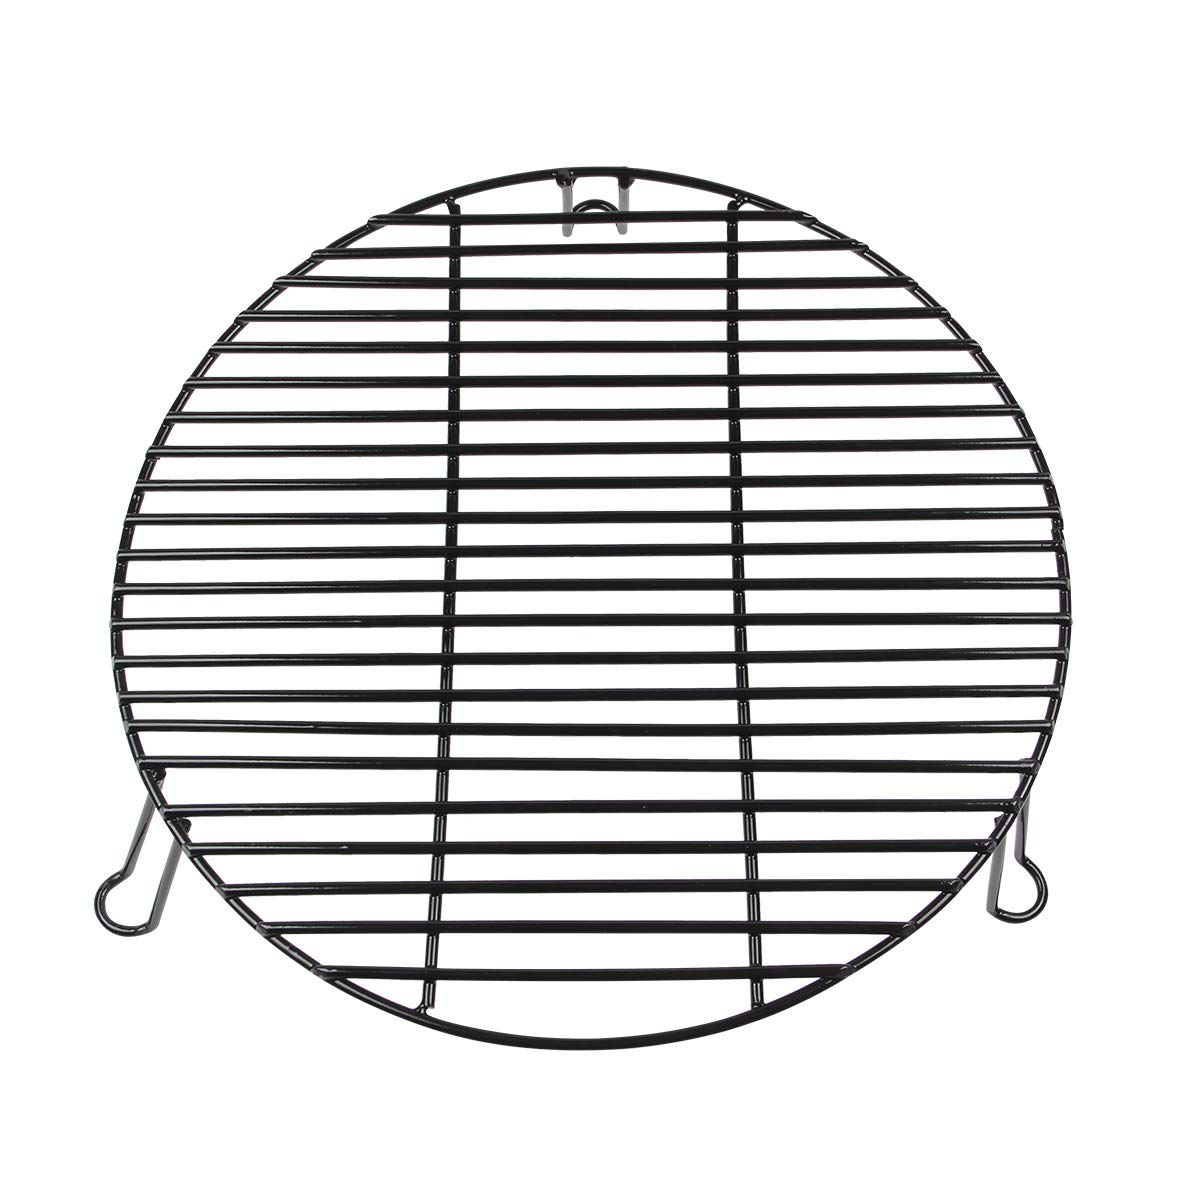 BBQ Grill Expander Rack Grilling Rack,Grill Warming Rack,Stack Rack With Enamel Coating Increase Grilling Surface Fit XL Big Green Egg,Big Joe or Other 24'' & Bigger Cooking-diameter Grill(XL-18 inch)